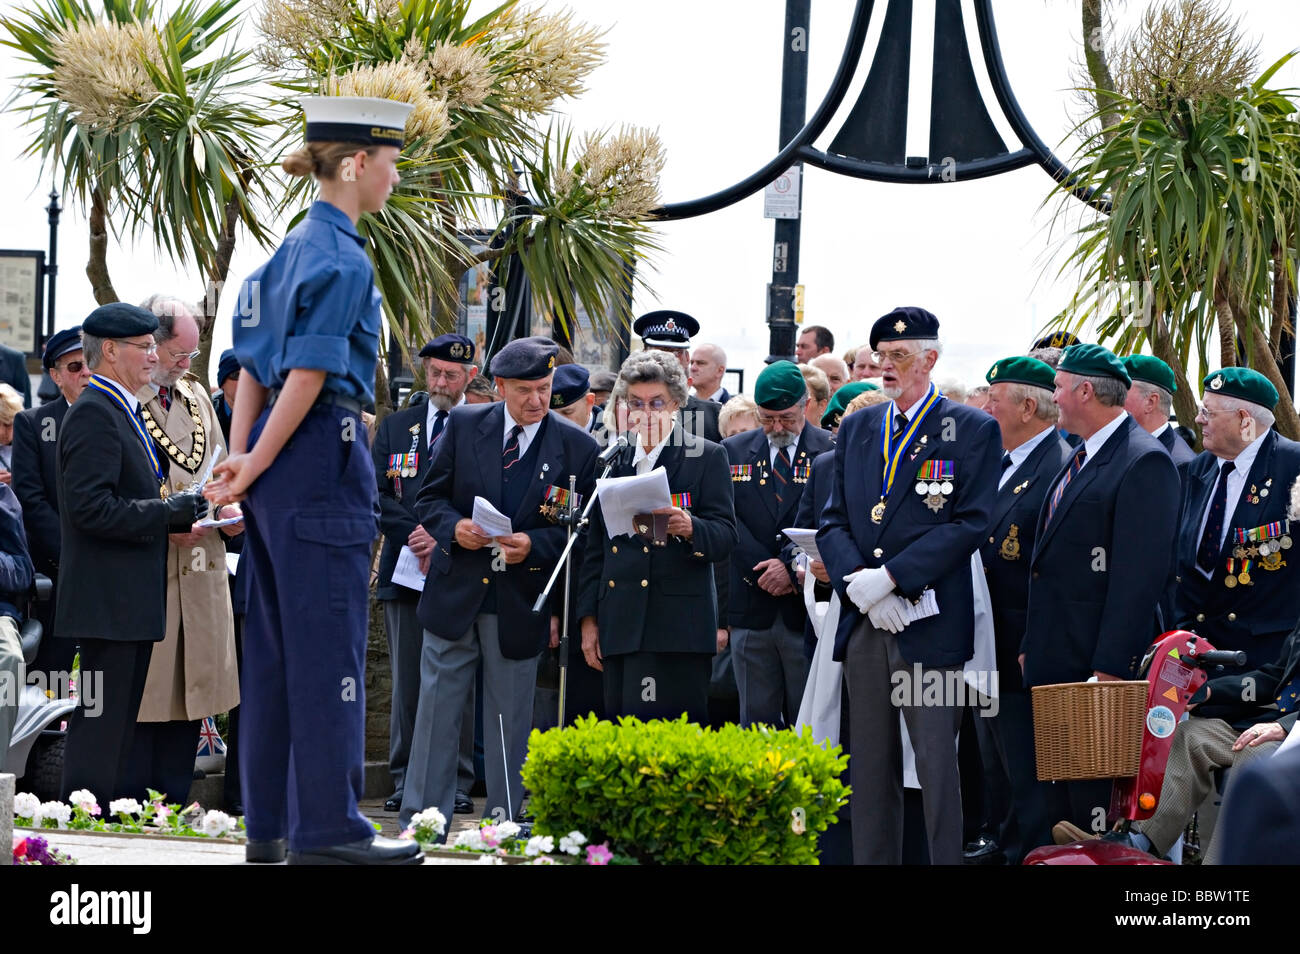 Veterans At A D Day 65th Commemoration Service In Clacton Essex UK